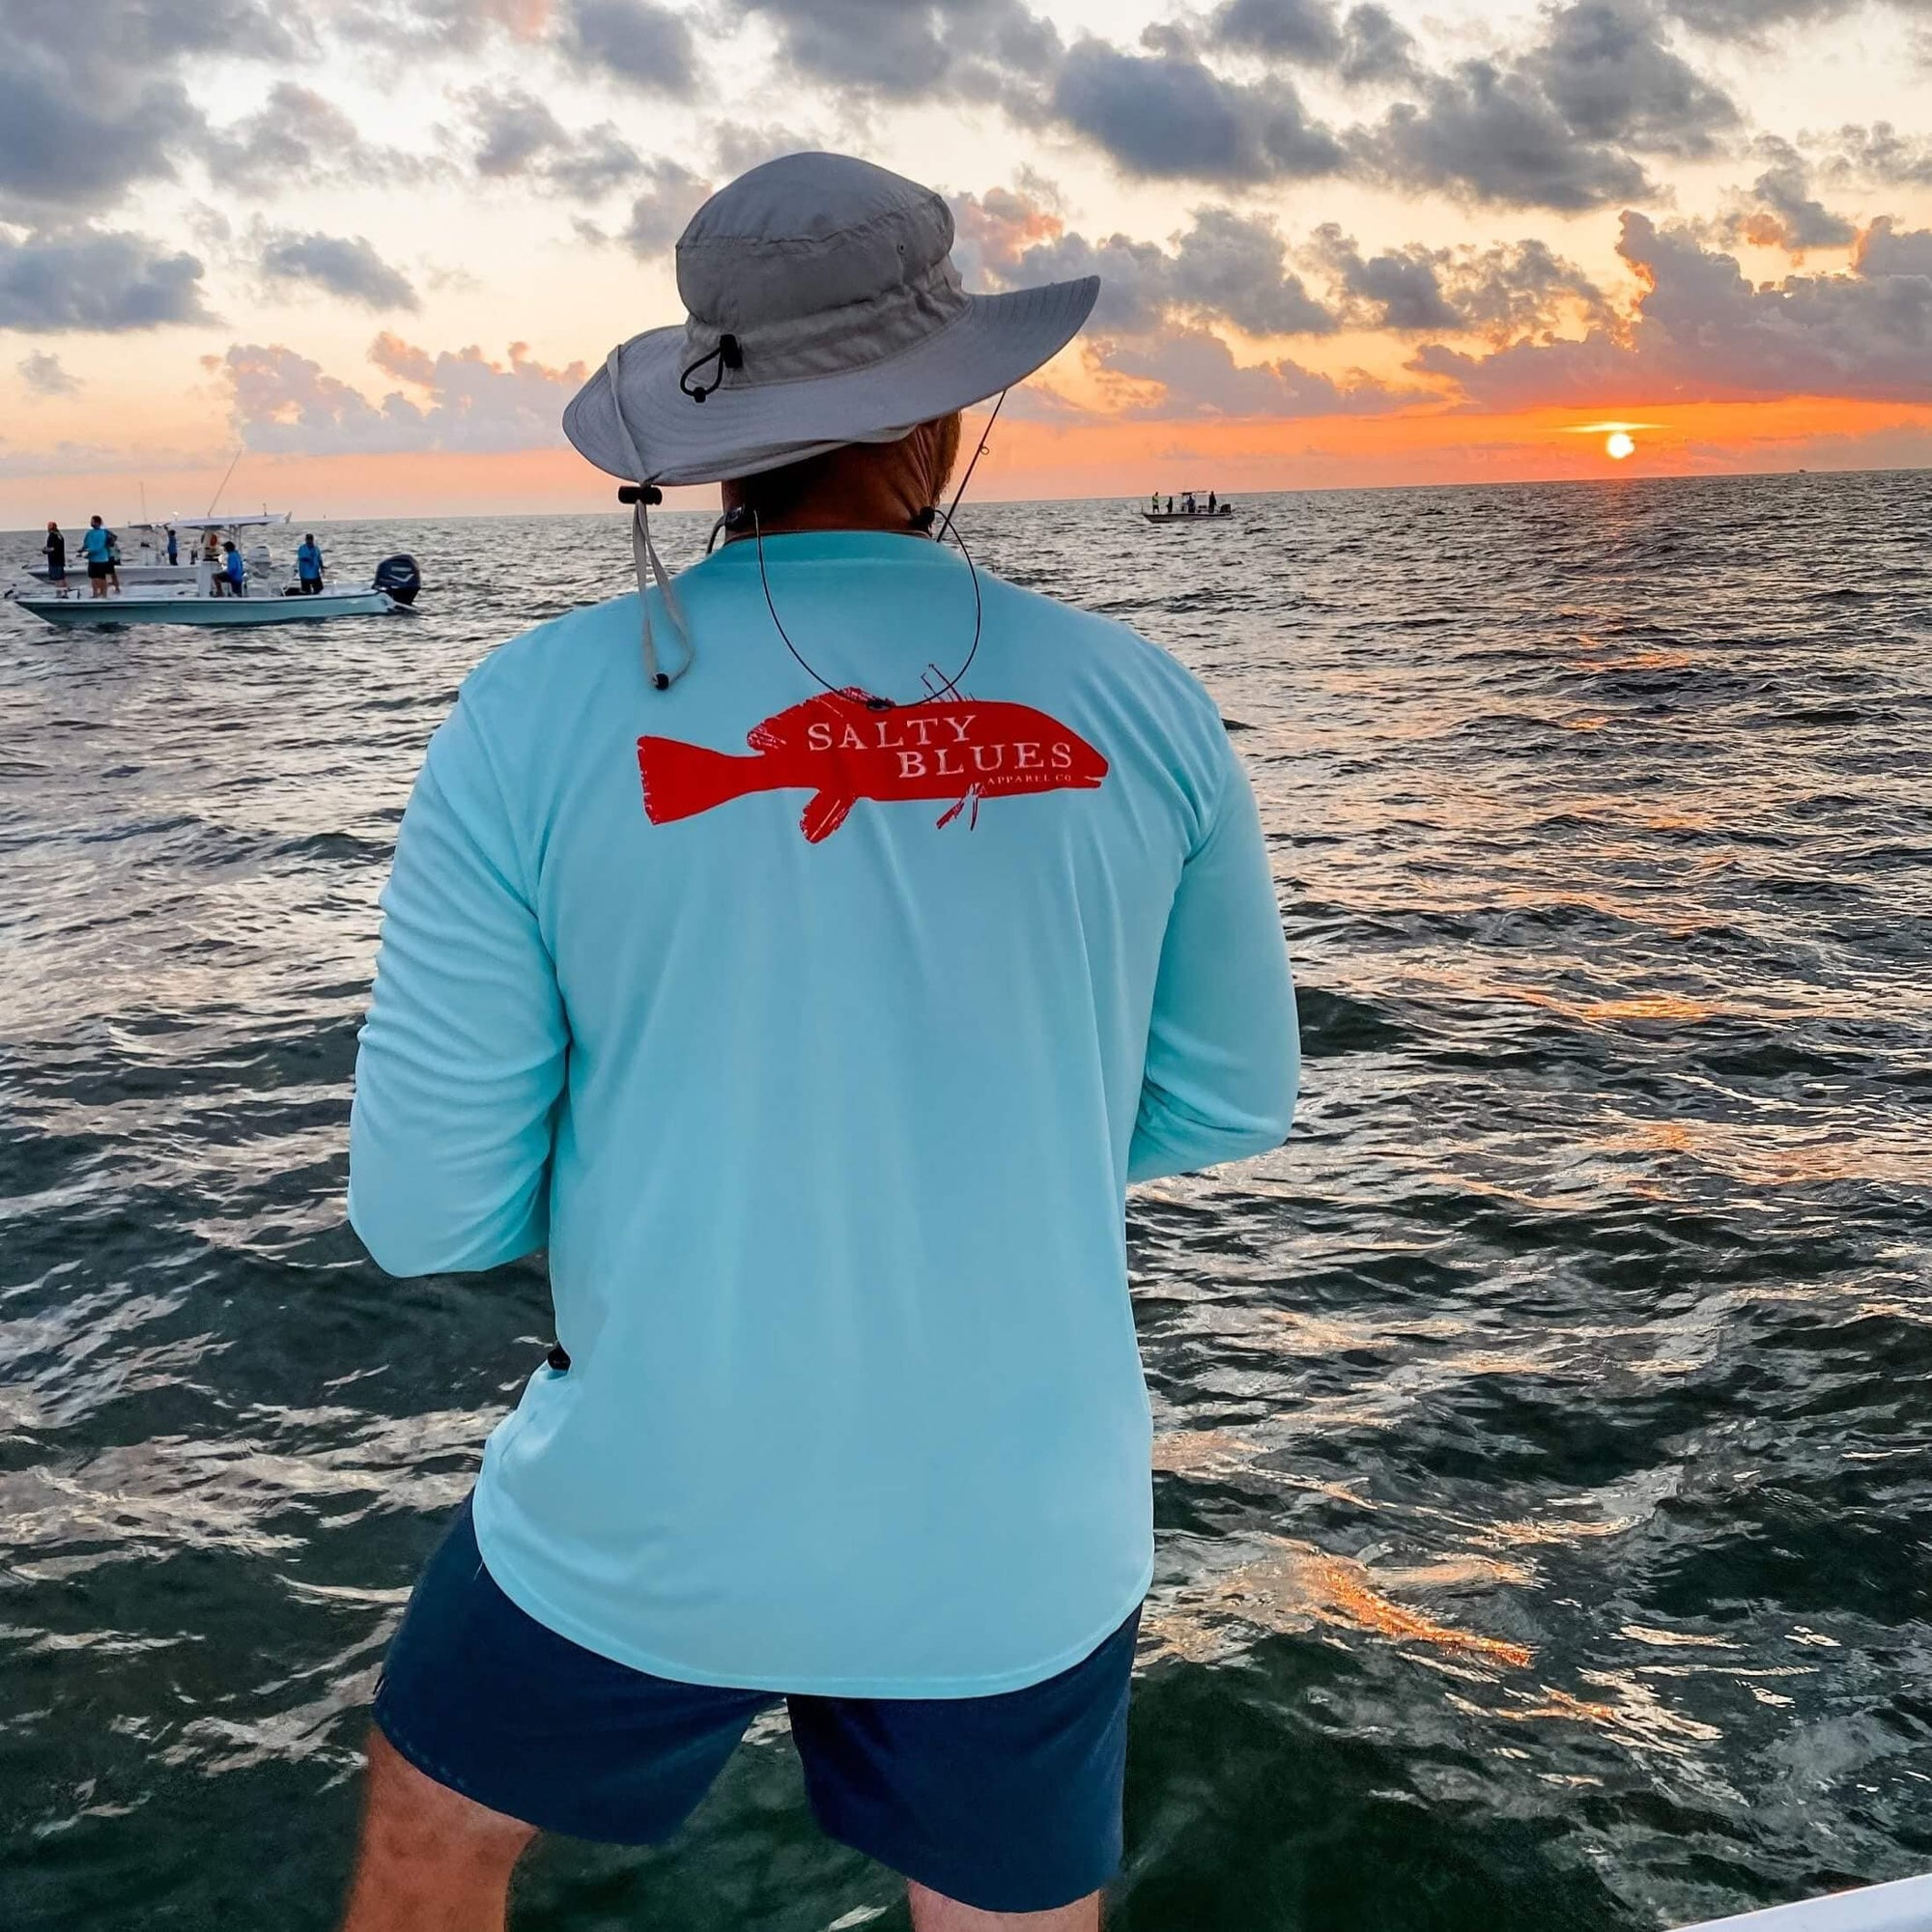 Redfish Performance (Seafoam) - Men's Performance Shirt - Latitudes & Attitudes LLC